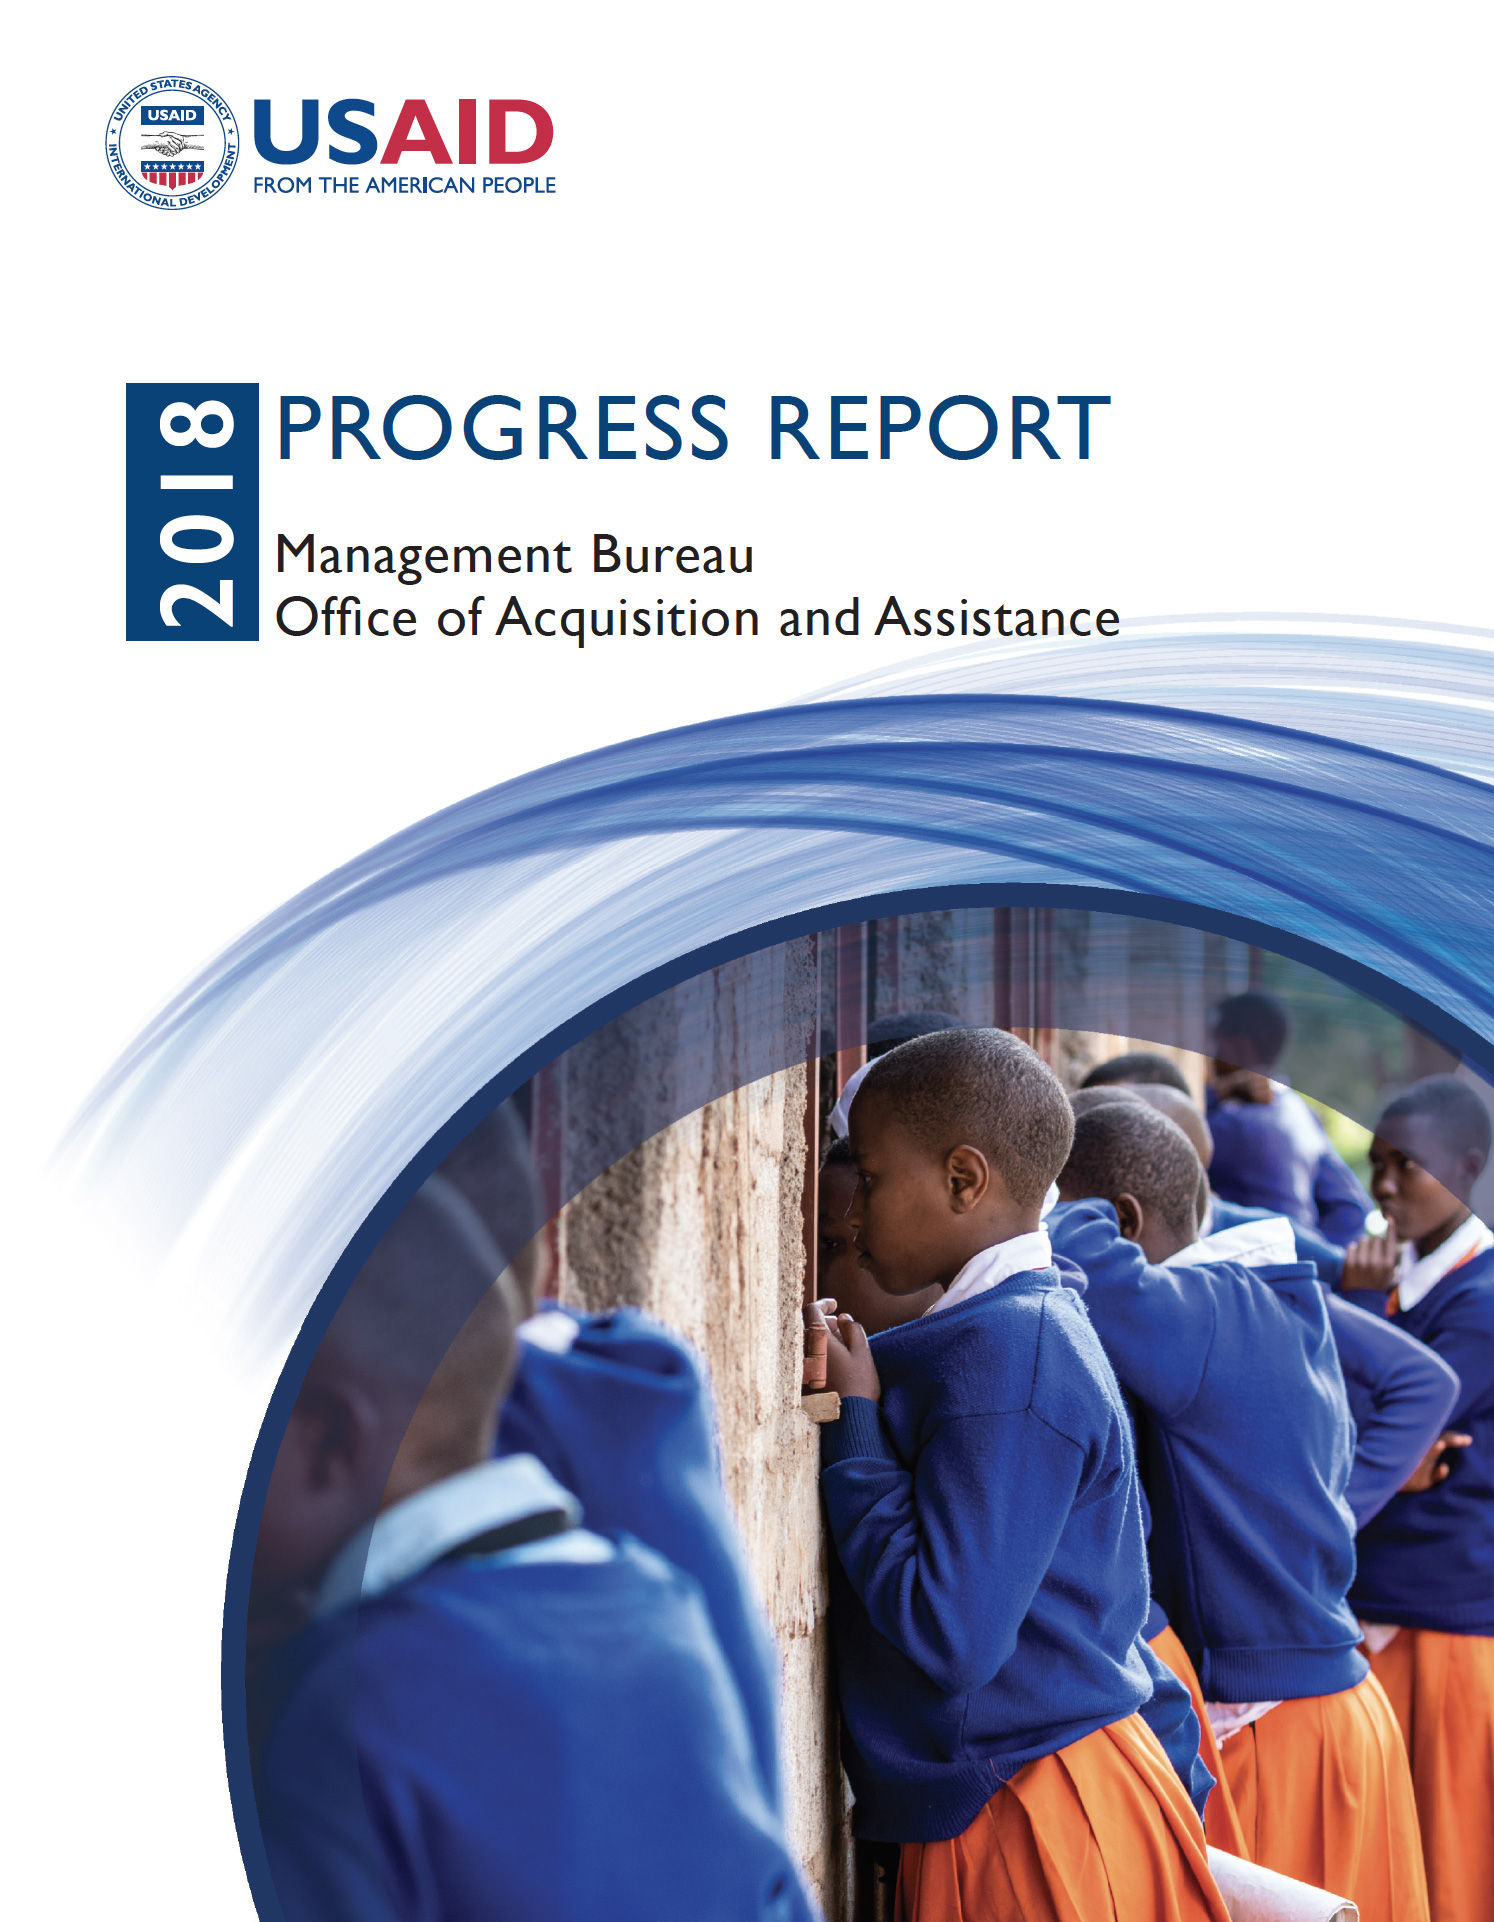 Management Bureau Office of Acquisition and Assistance Progress Report - Fiscal Year 2018